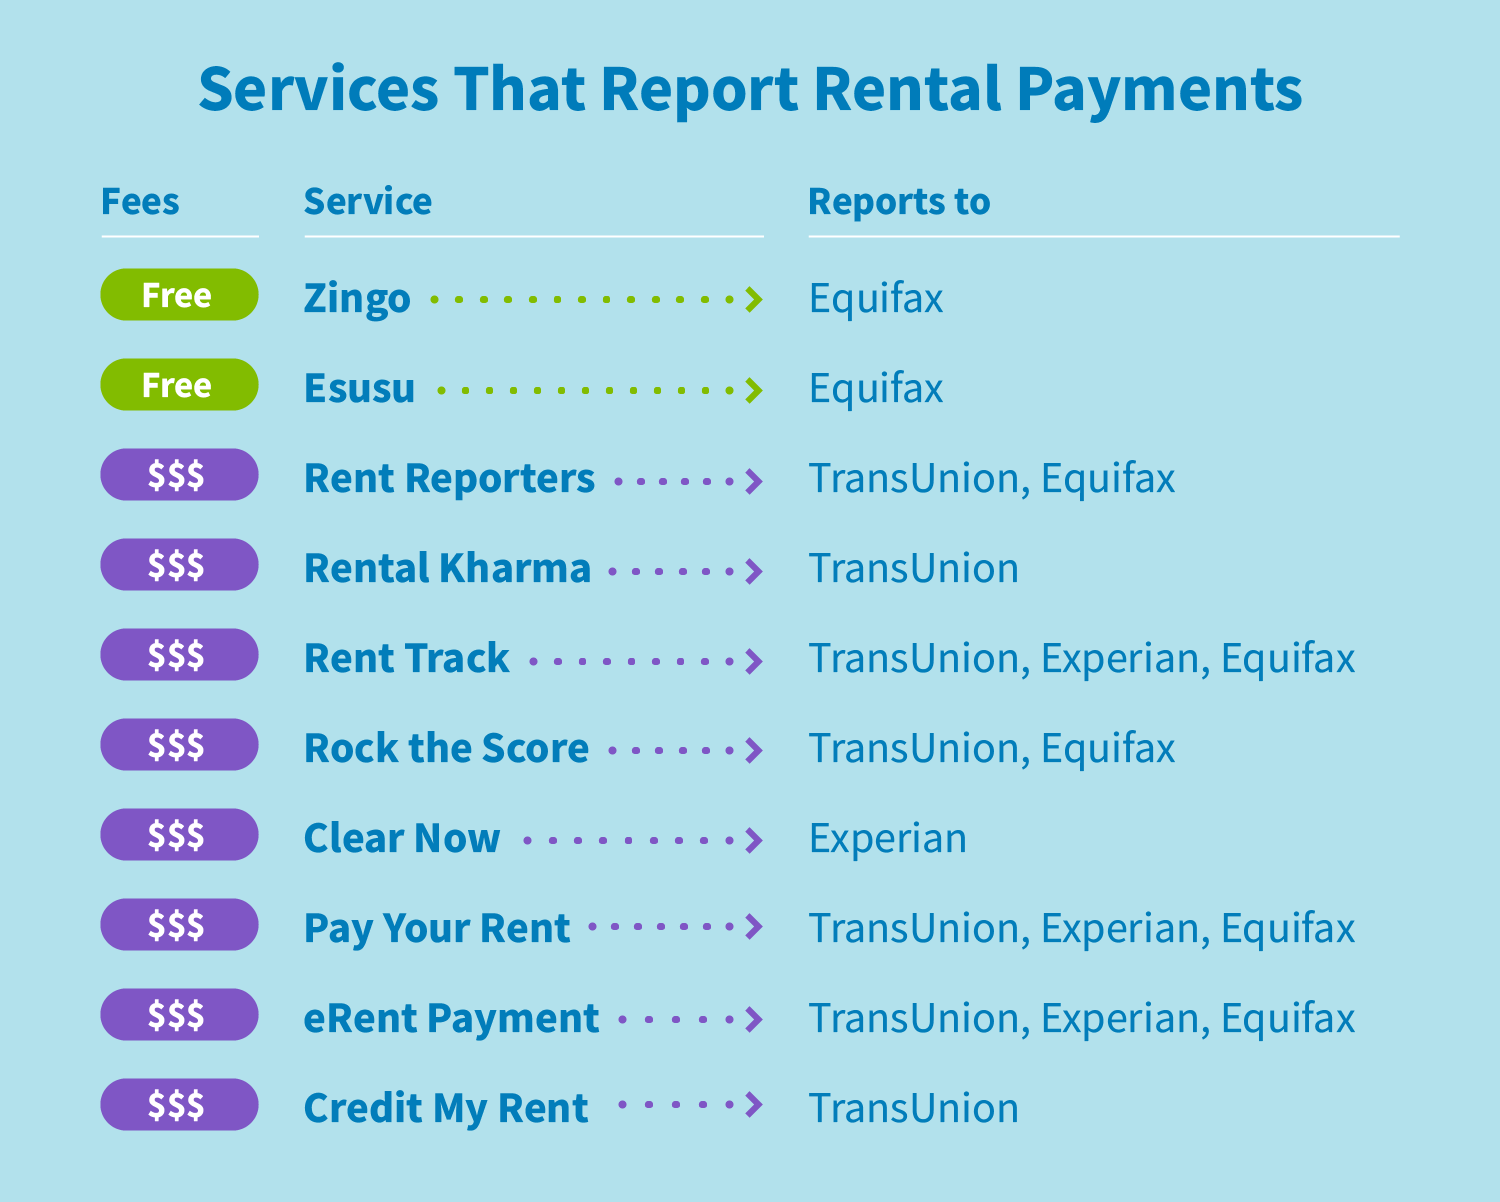 Services that report rental payments